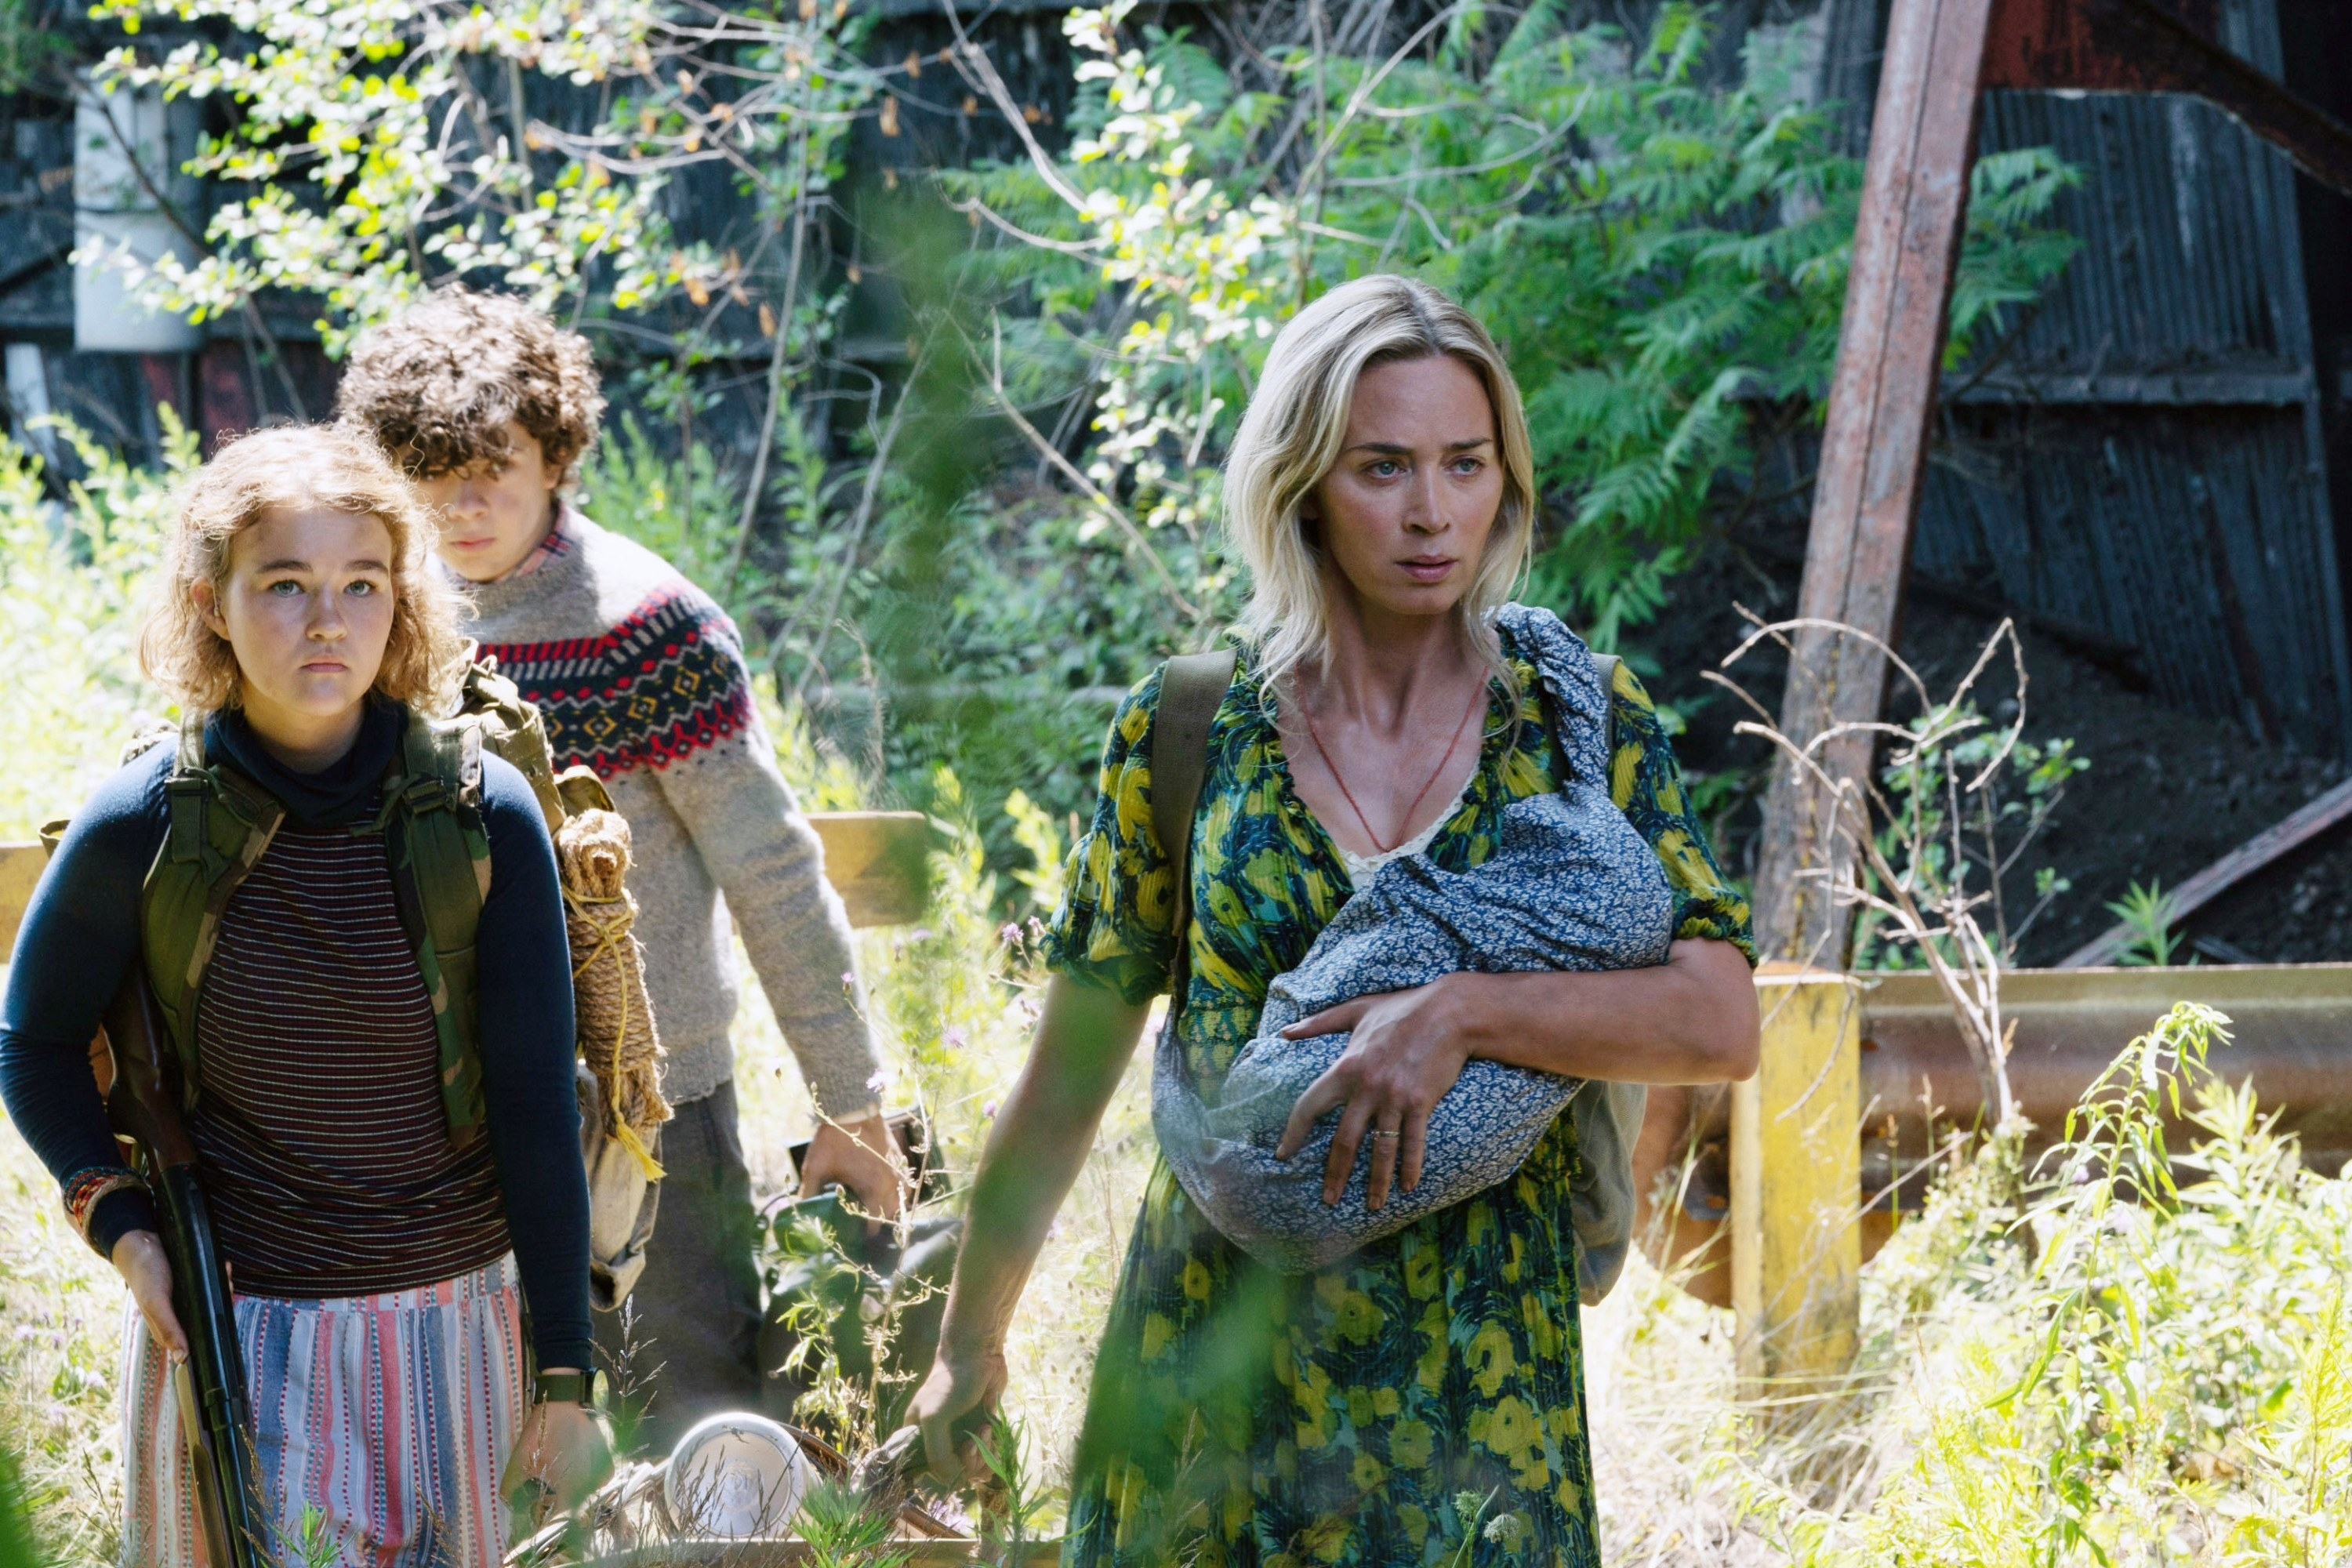 Emily Blunt carries a baby and leads Millicent Simmonds and Noah Jupe through some weeds